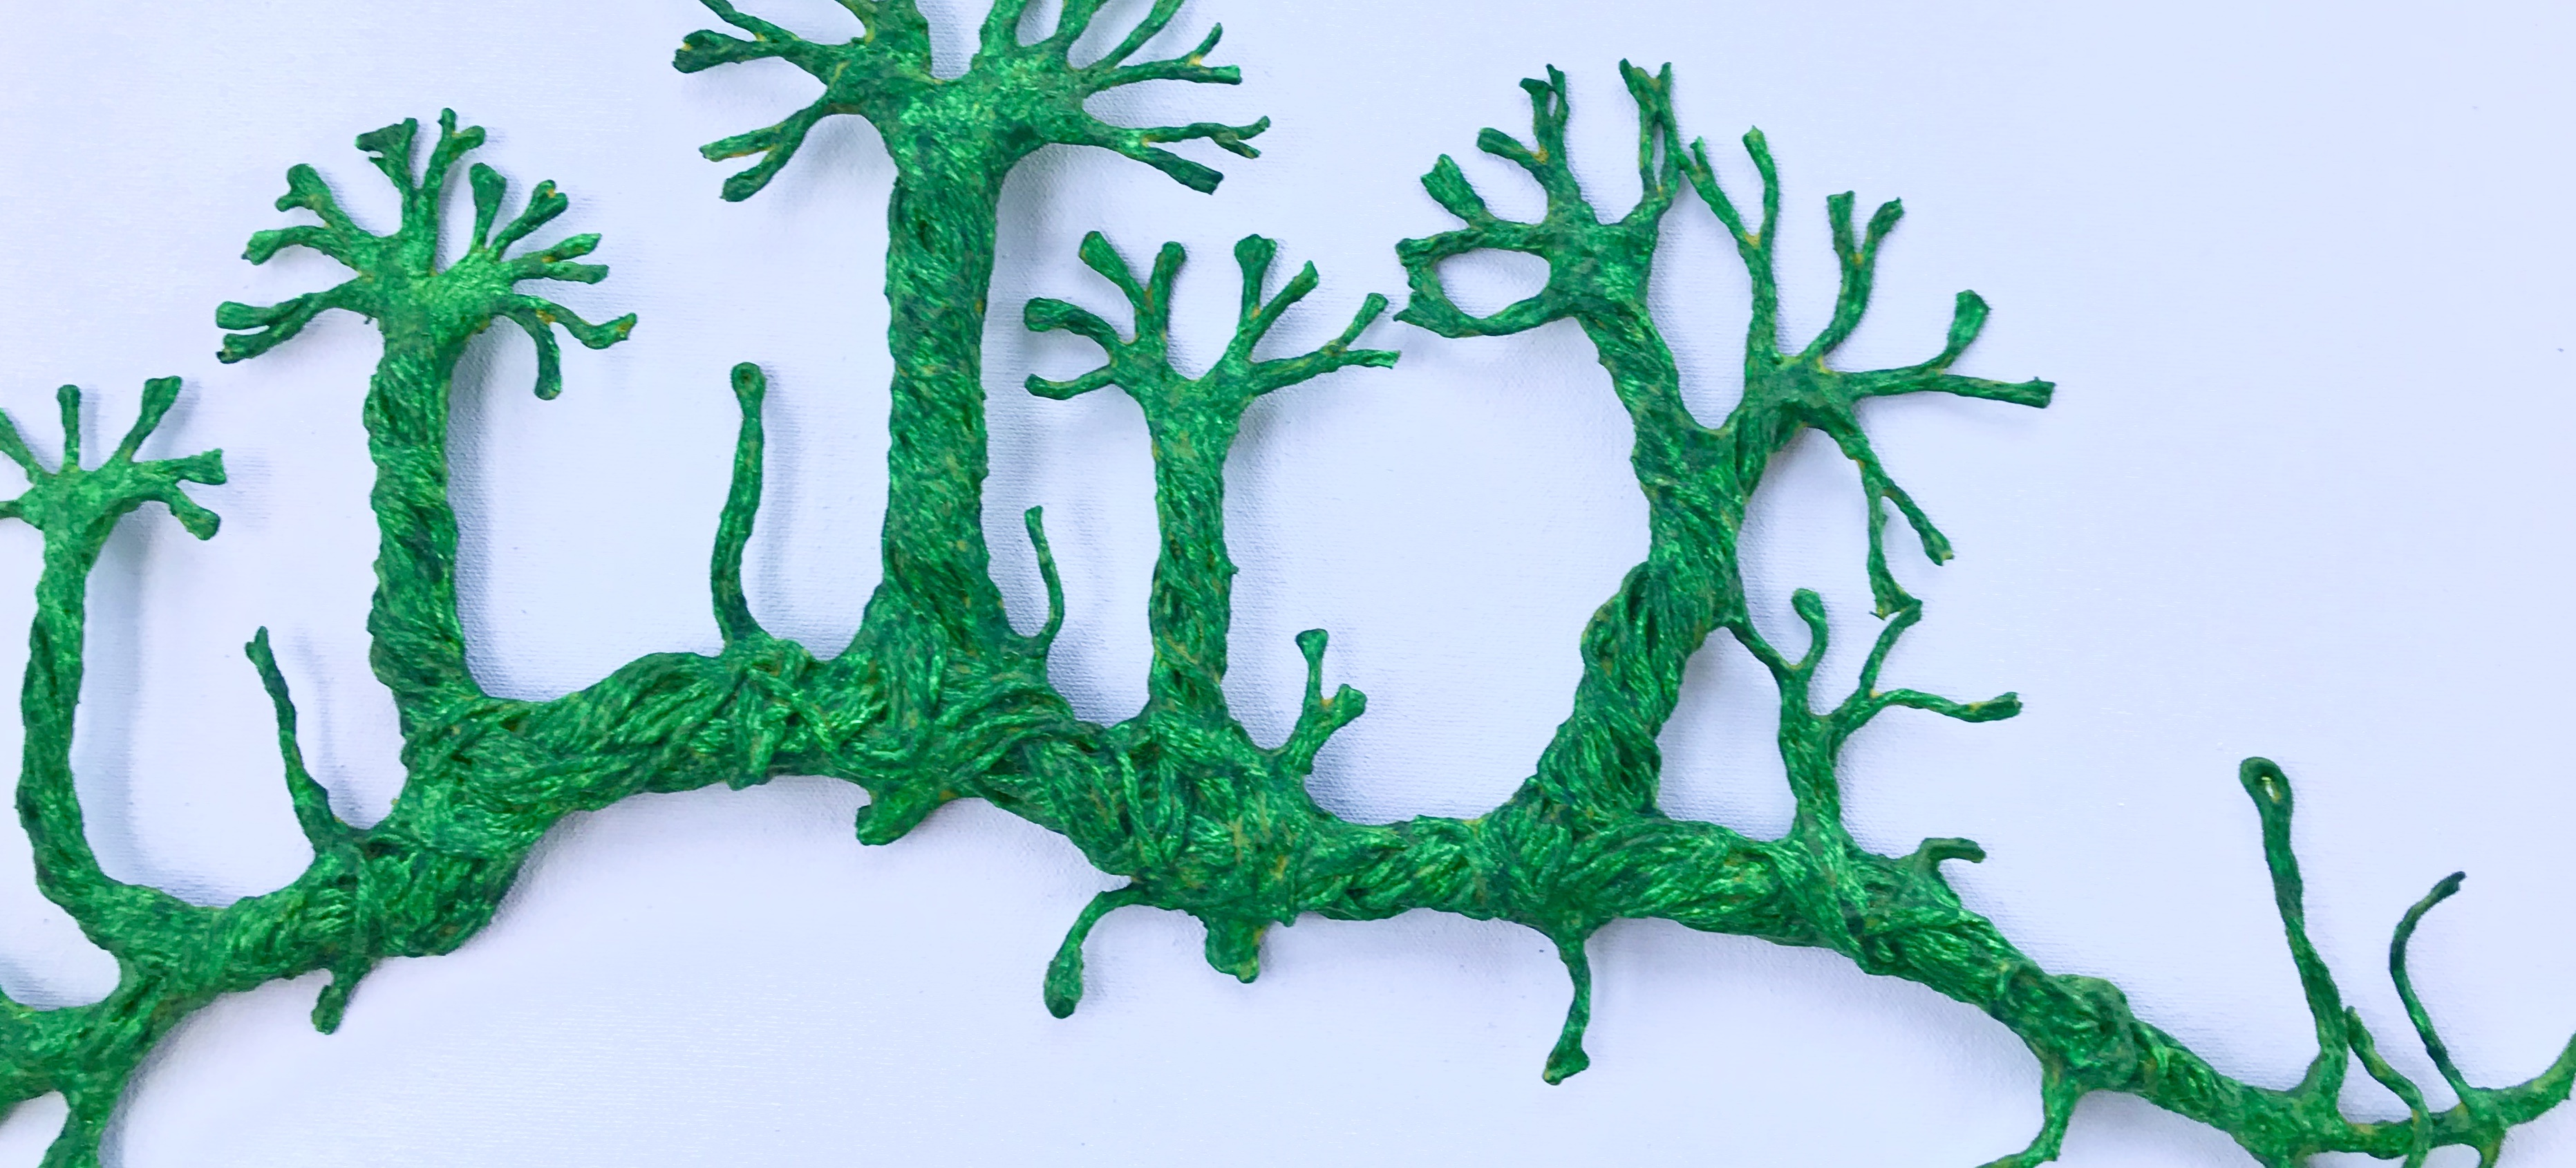 Detail of an original sculpture by MJ Seal made from thread and paper mache that resembles some primitive, emerald green forest of vines